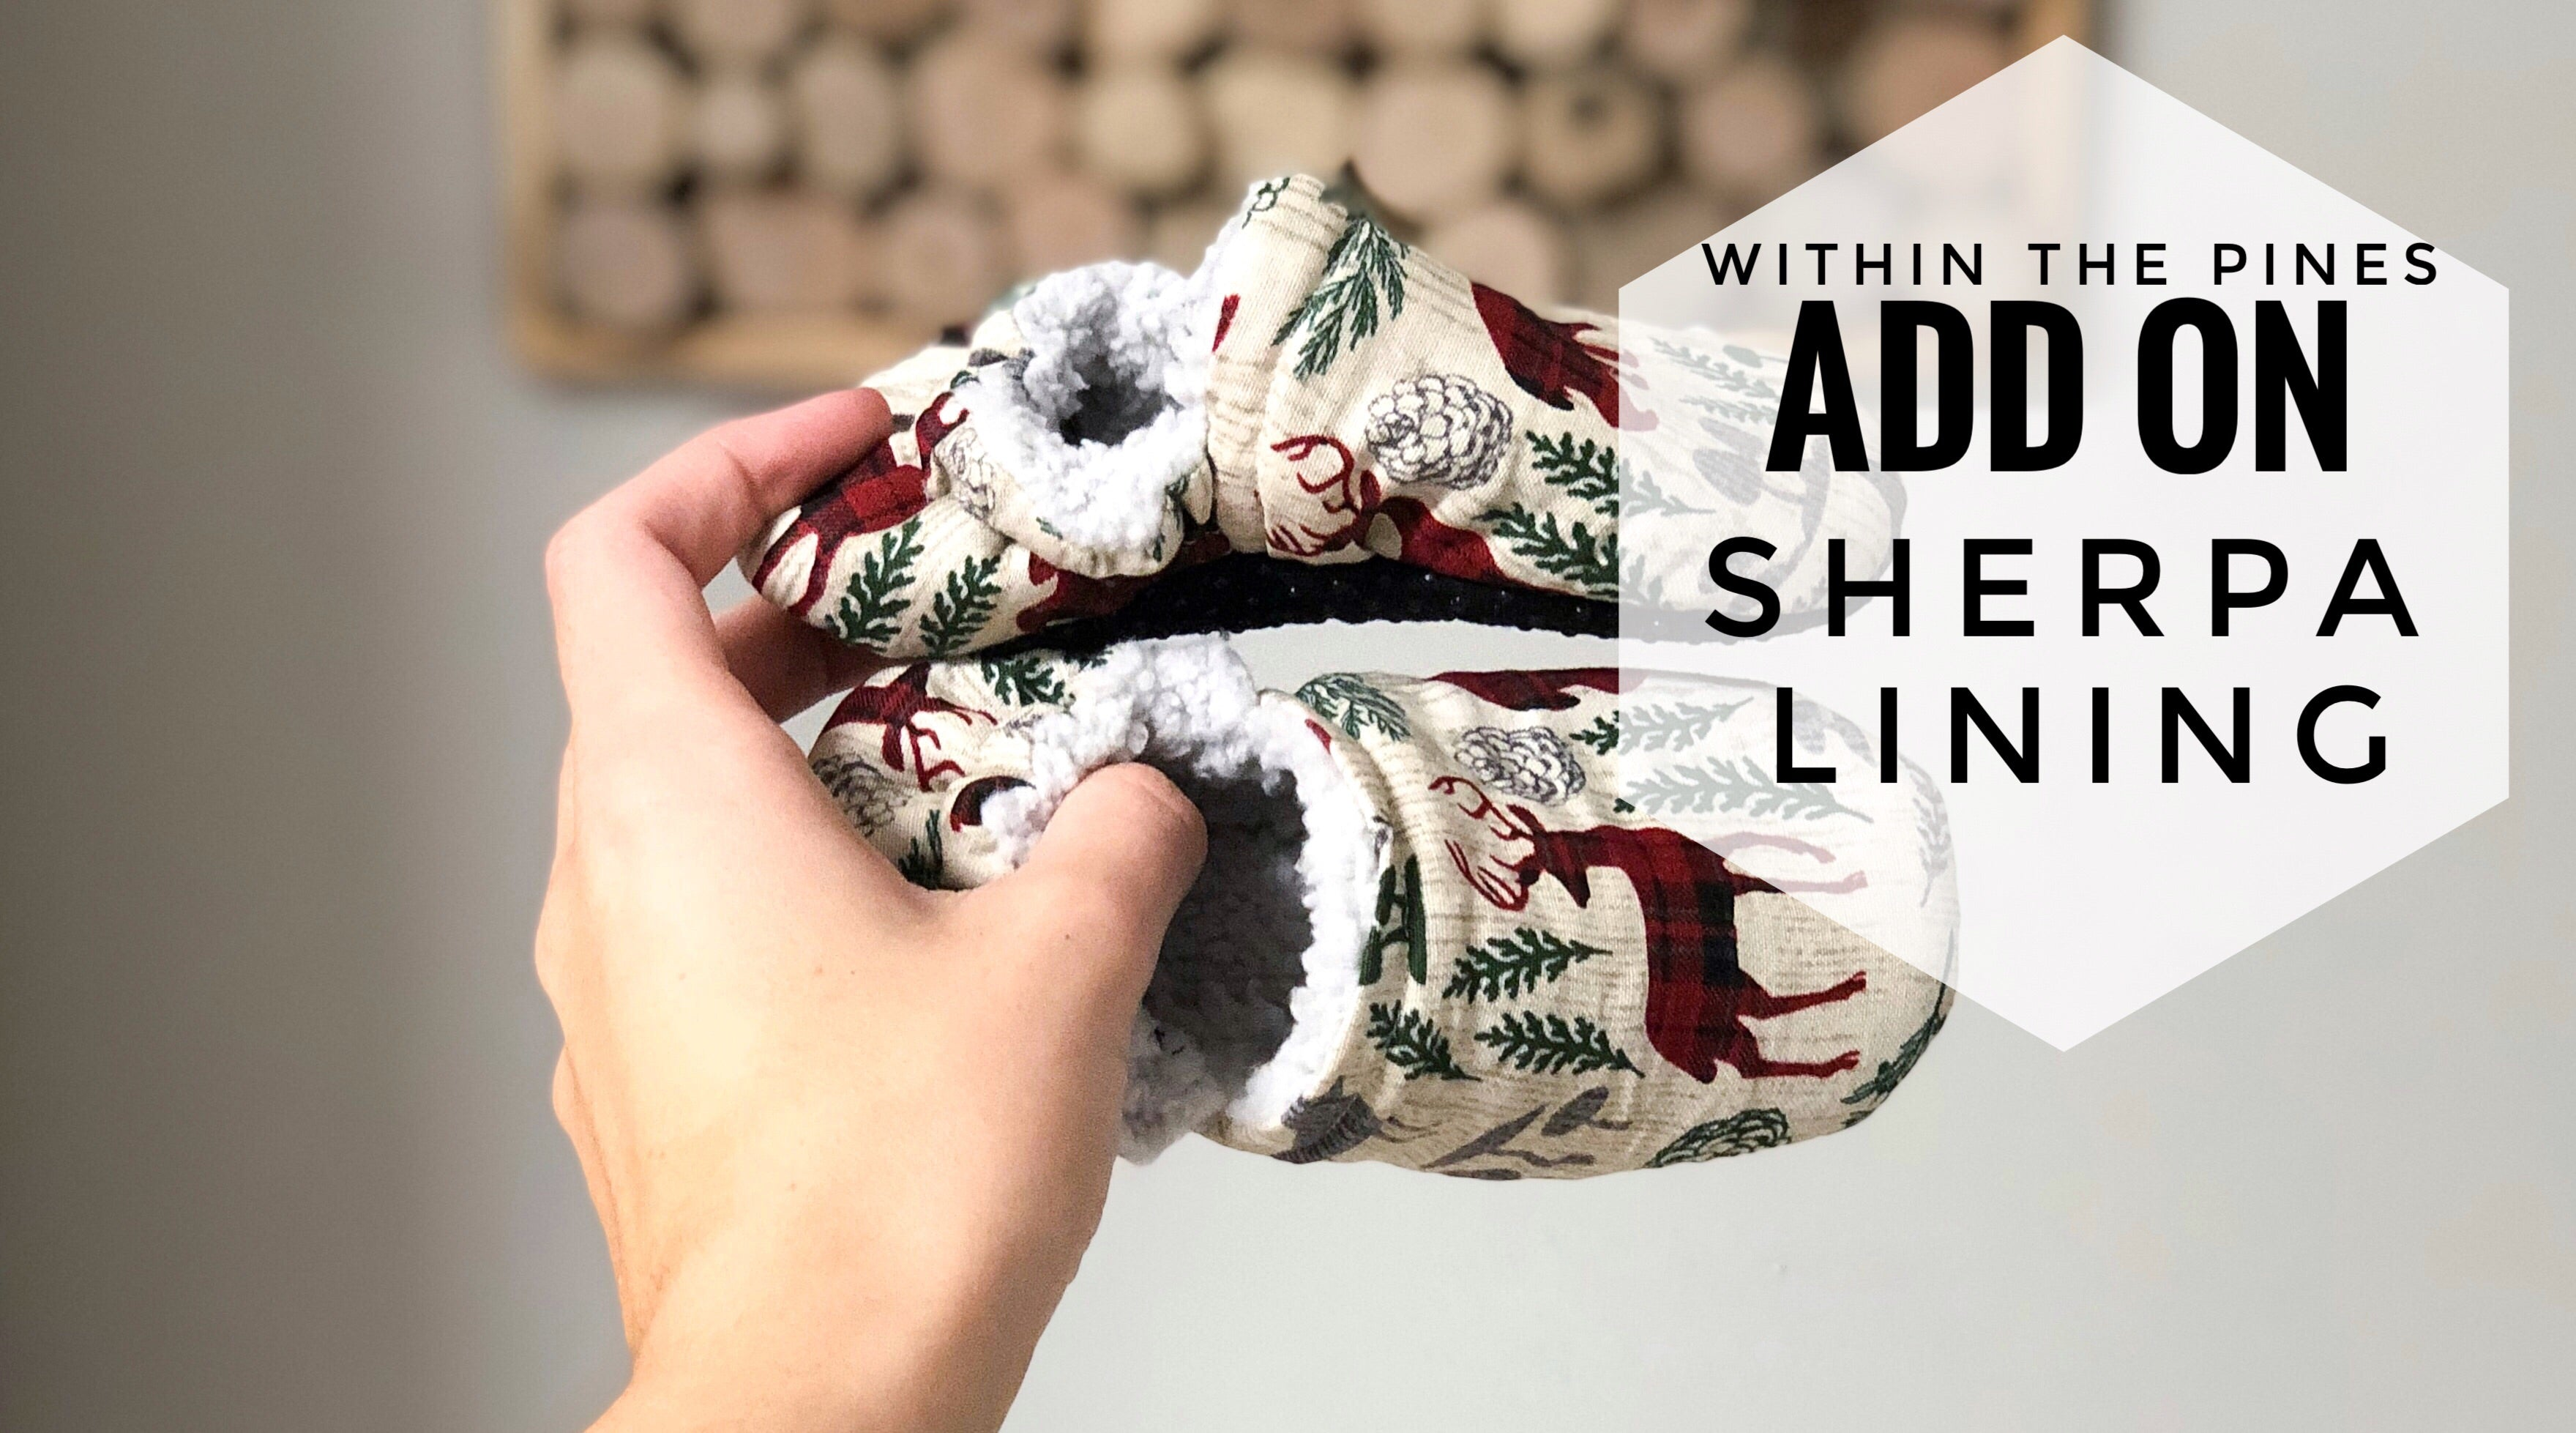 ADD ON: Sherpa Lining